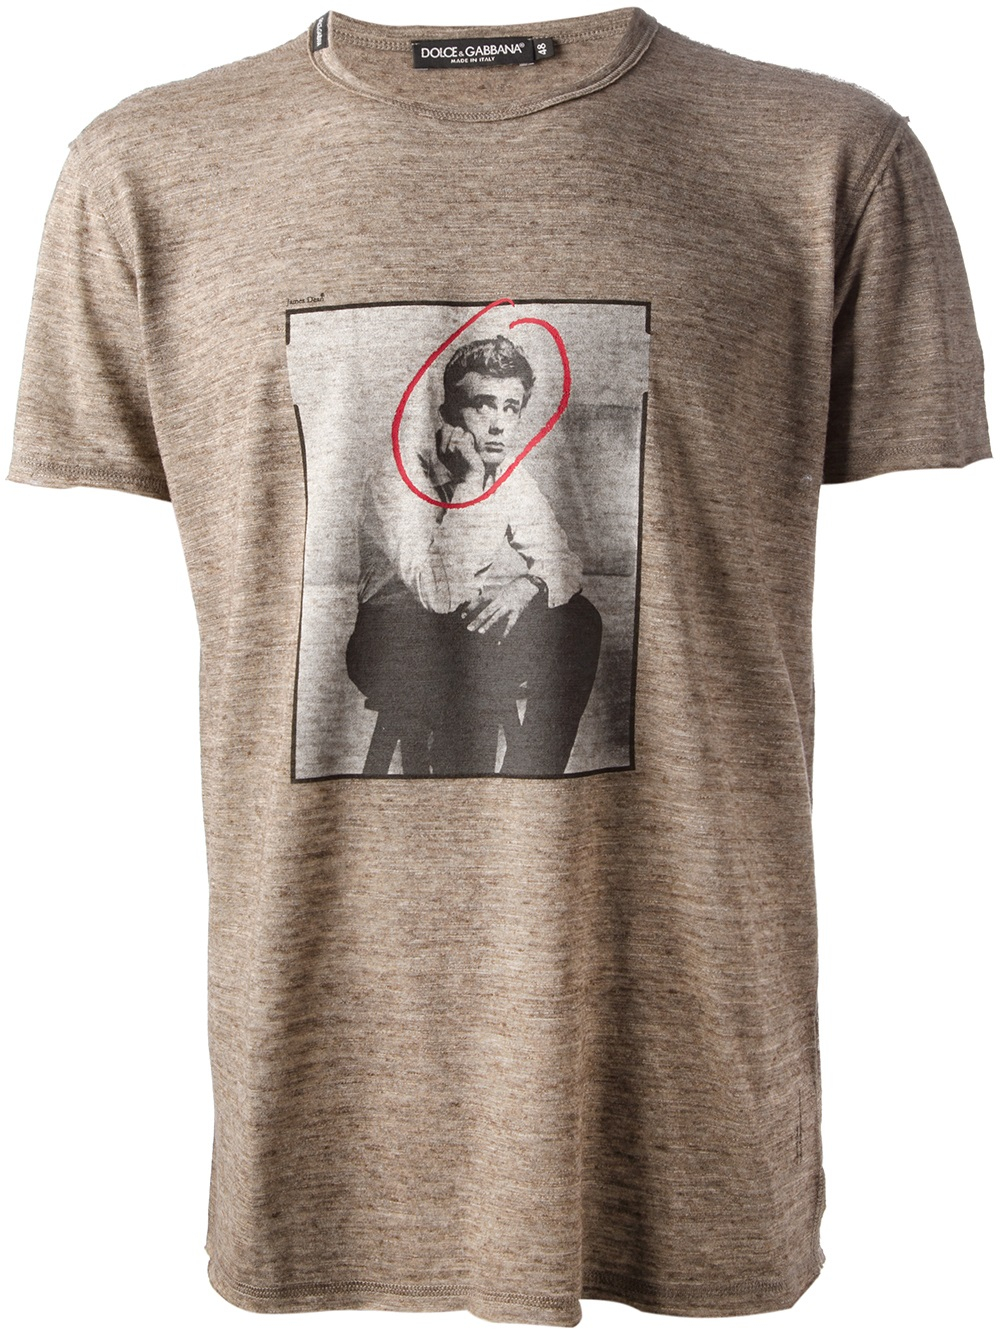 defb4aa24557d4 Dolce & Gabbana James Dean Tshirt in Brown for Men - Lyst